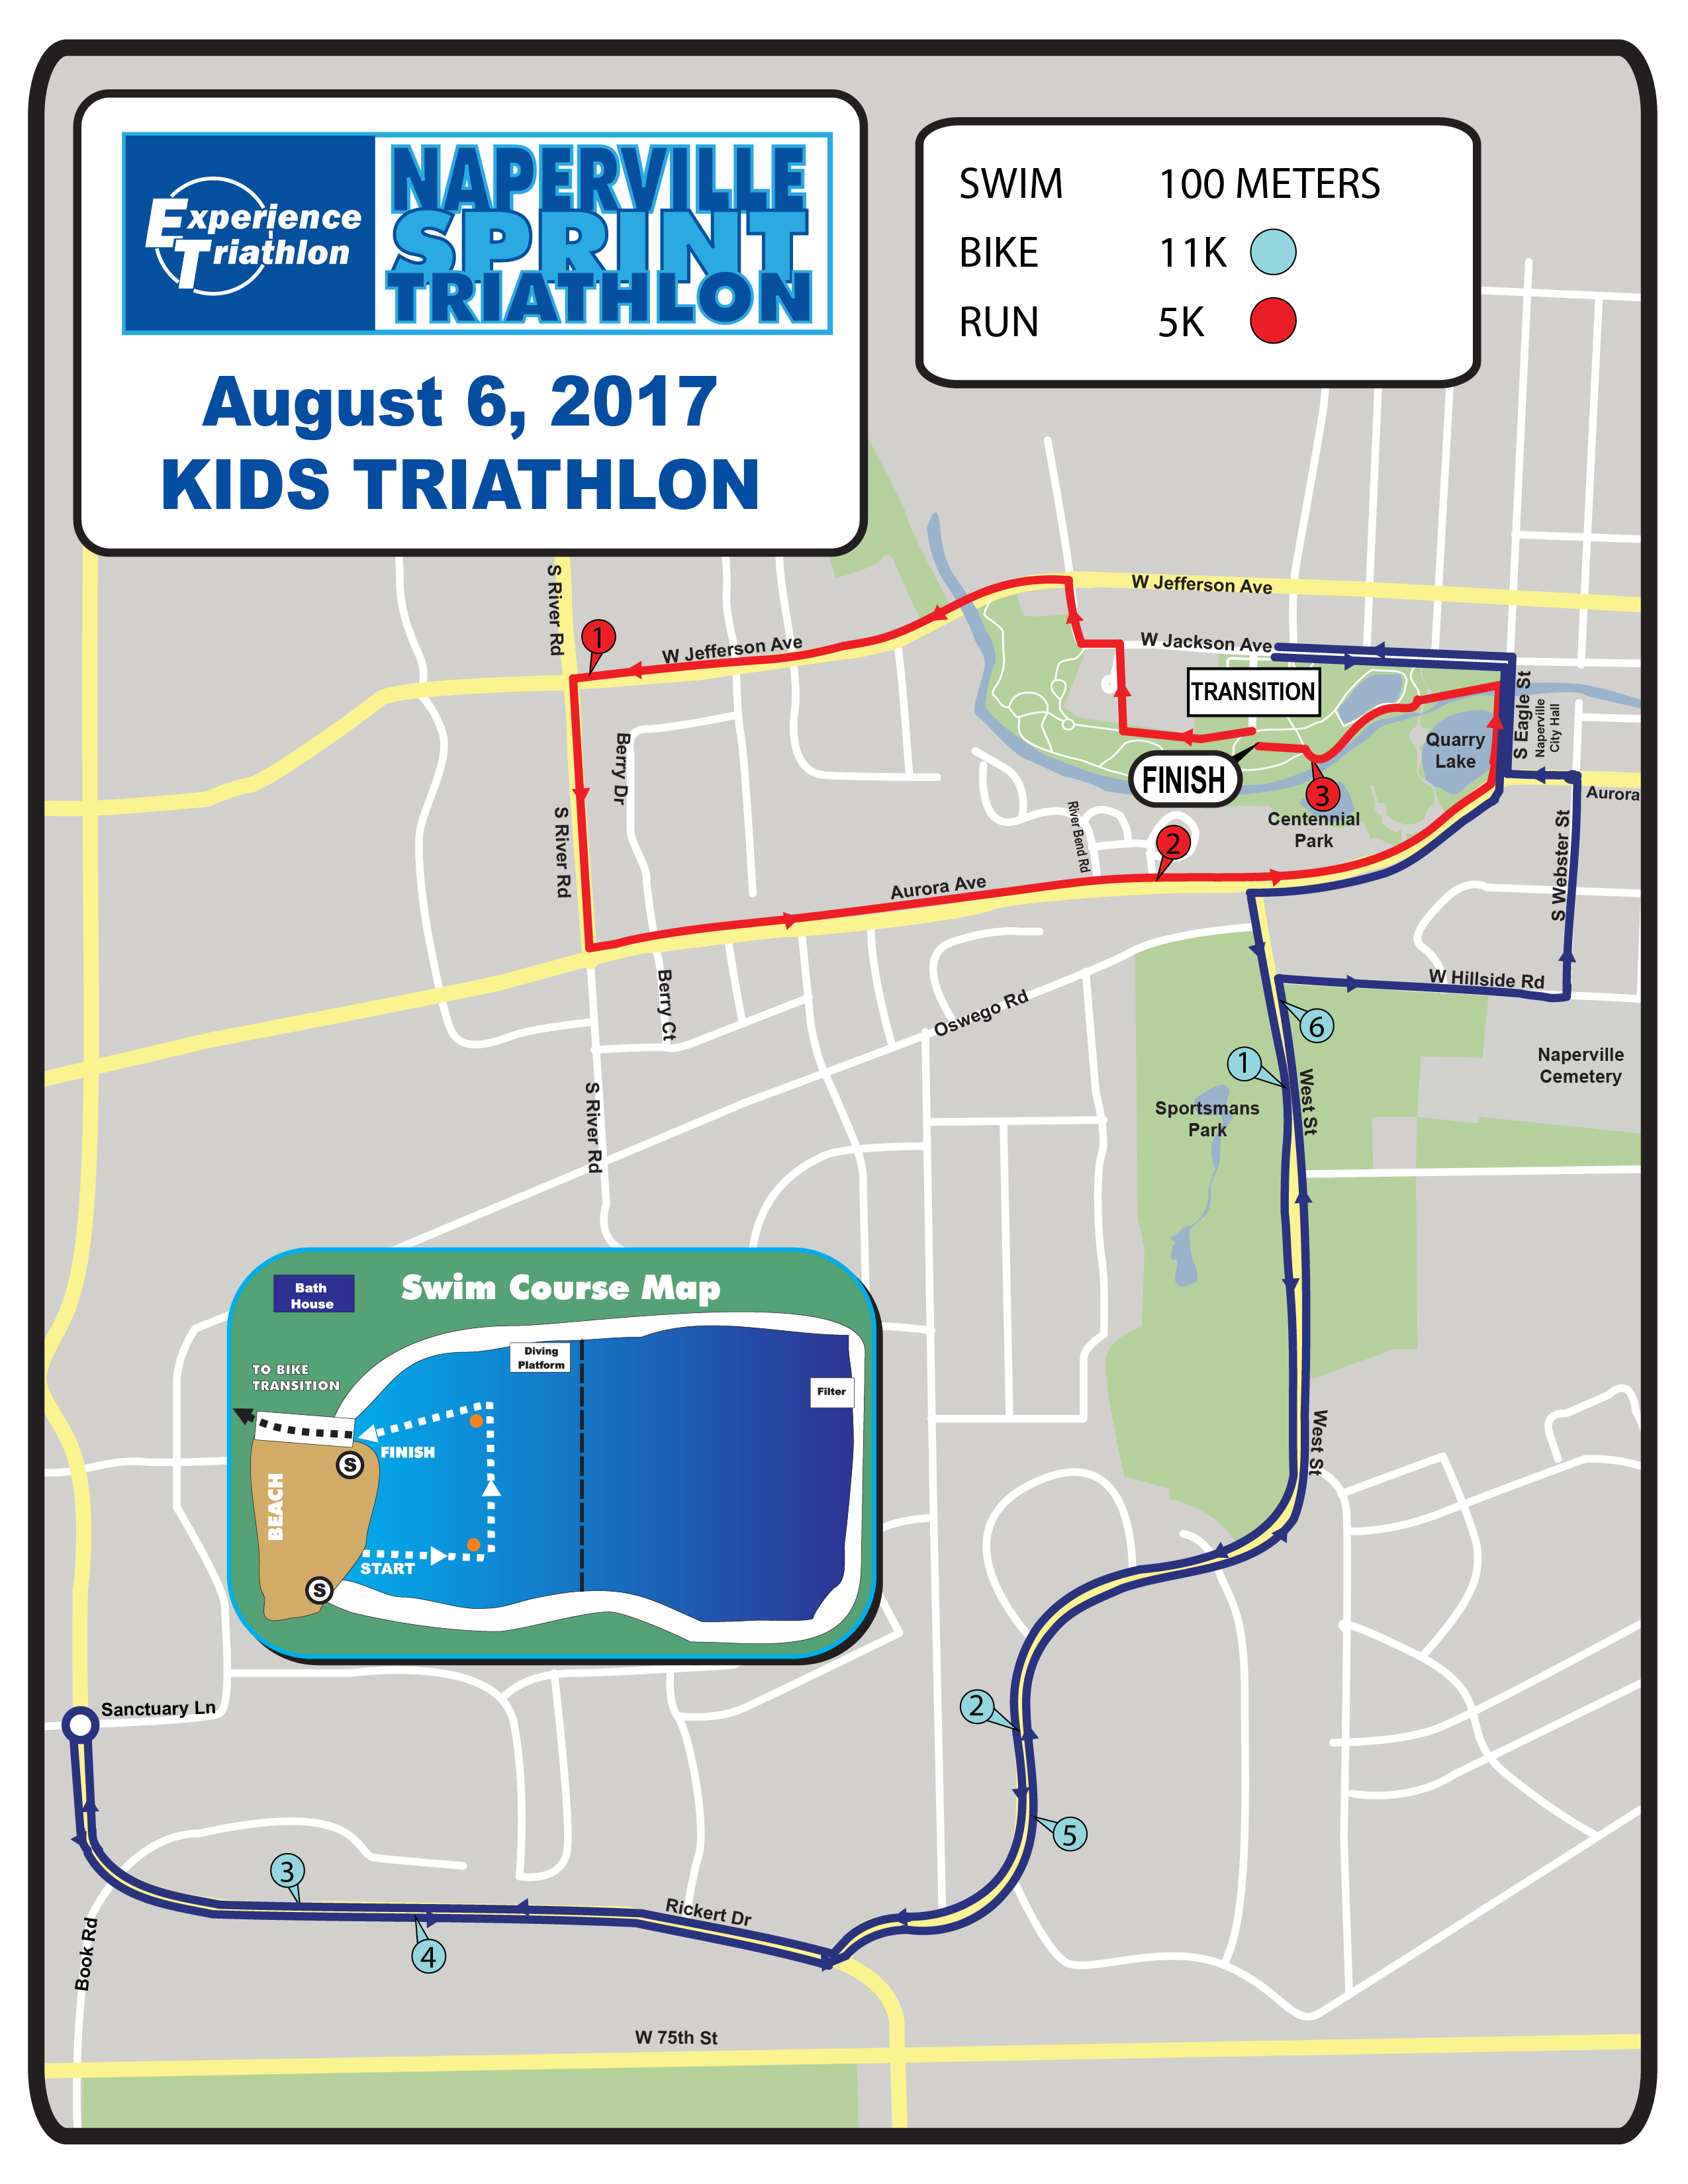 Naperville Sprint Triathon - Kids Triathlon Race Course